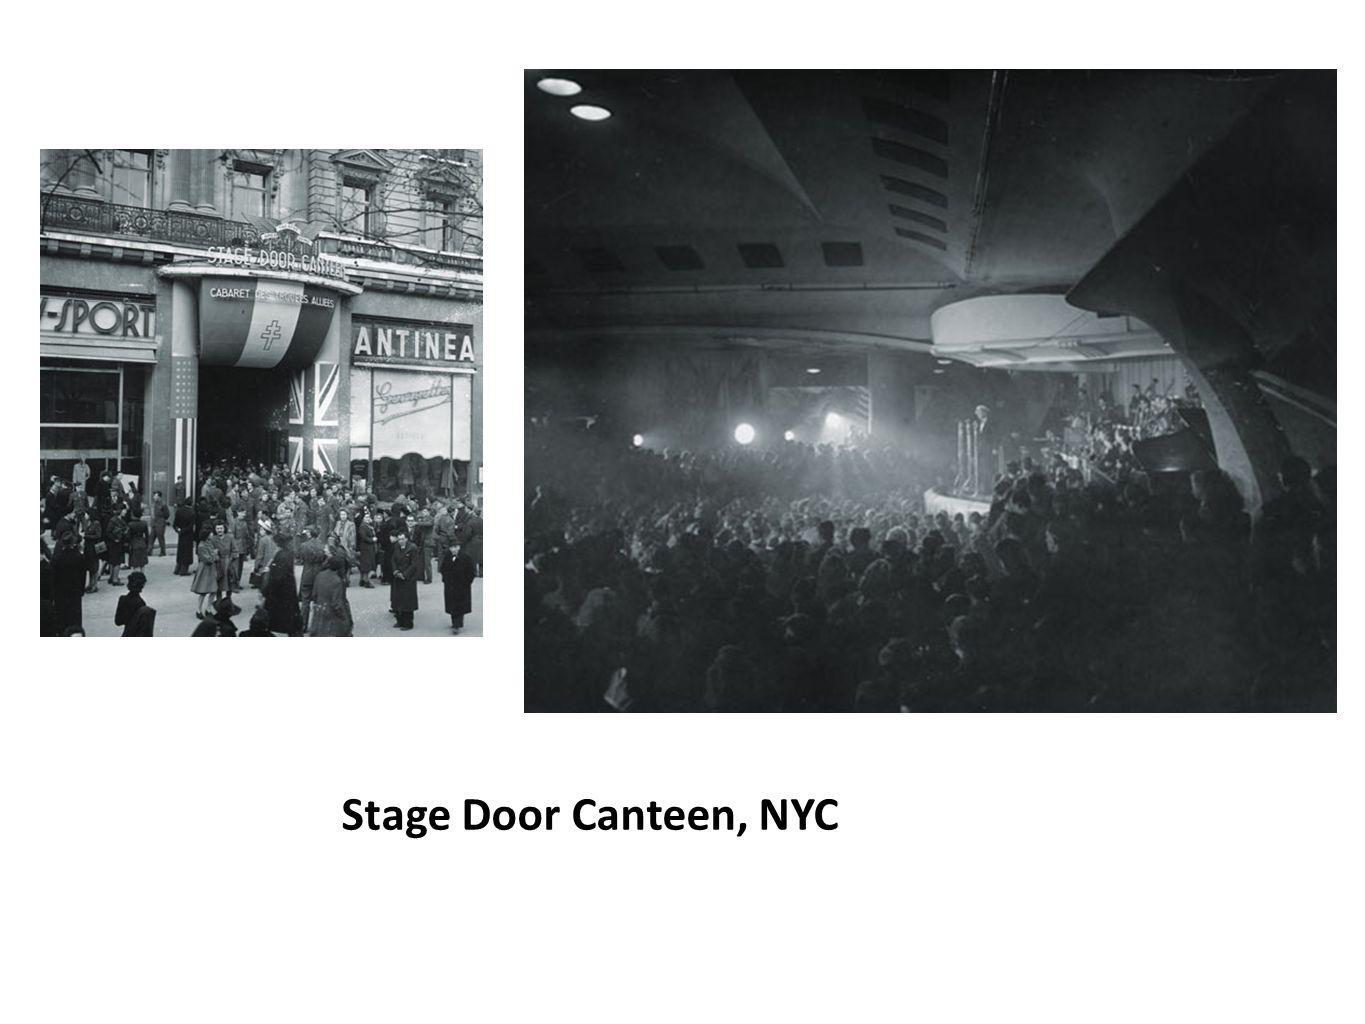 Stage Door Canteen, NYC